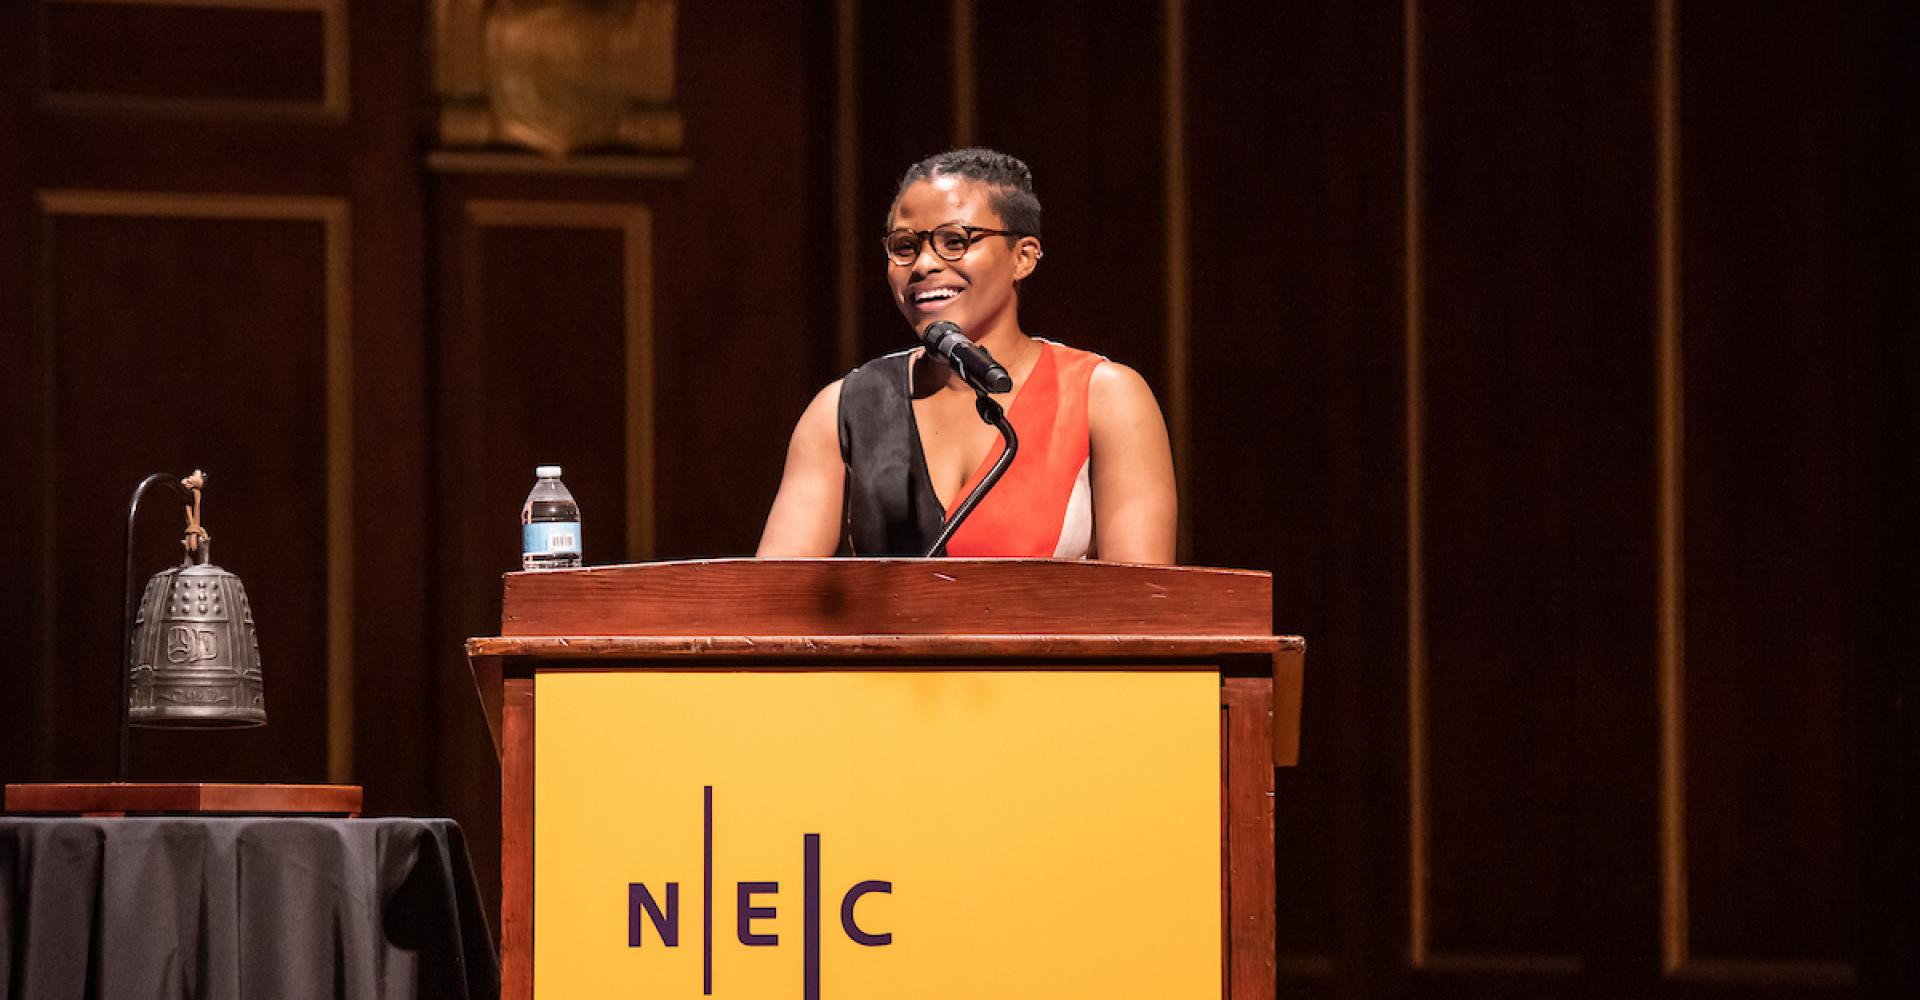 Robyn Smith delivers remarks at an NEC podium in Jordan Hall.